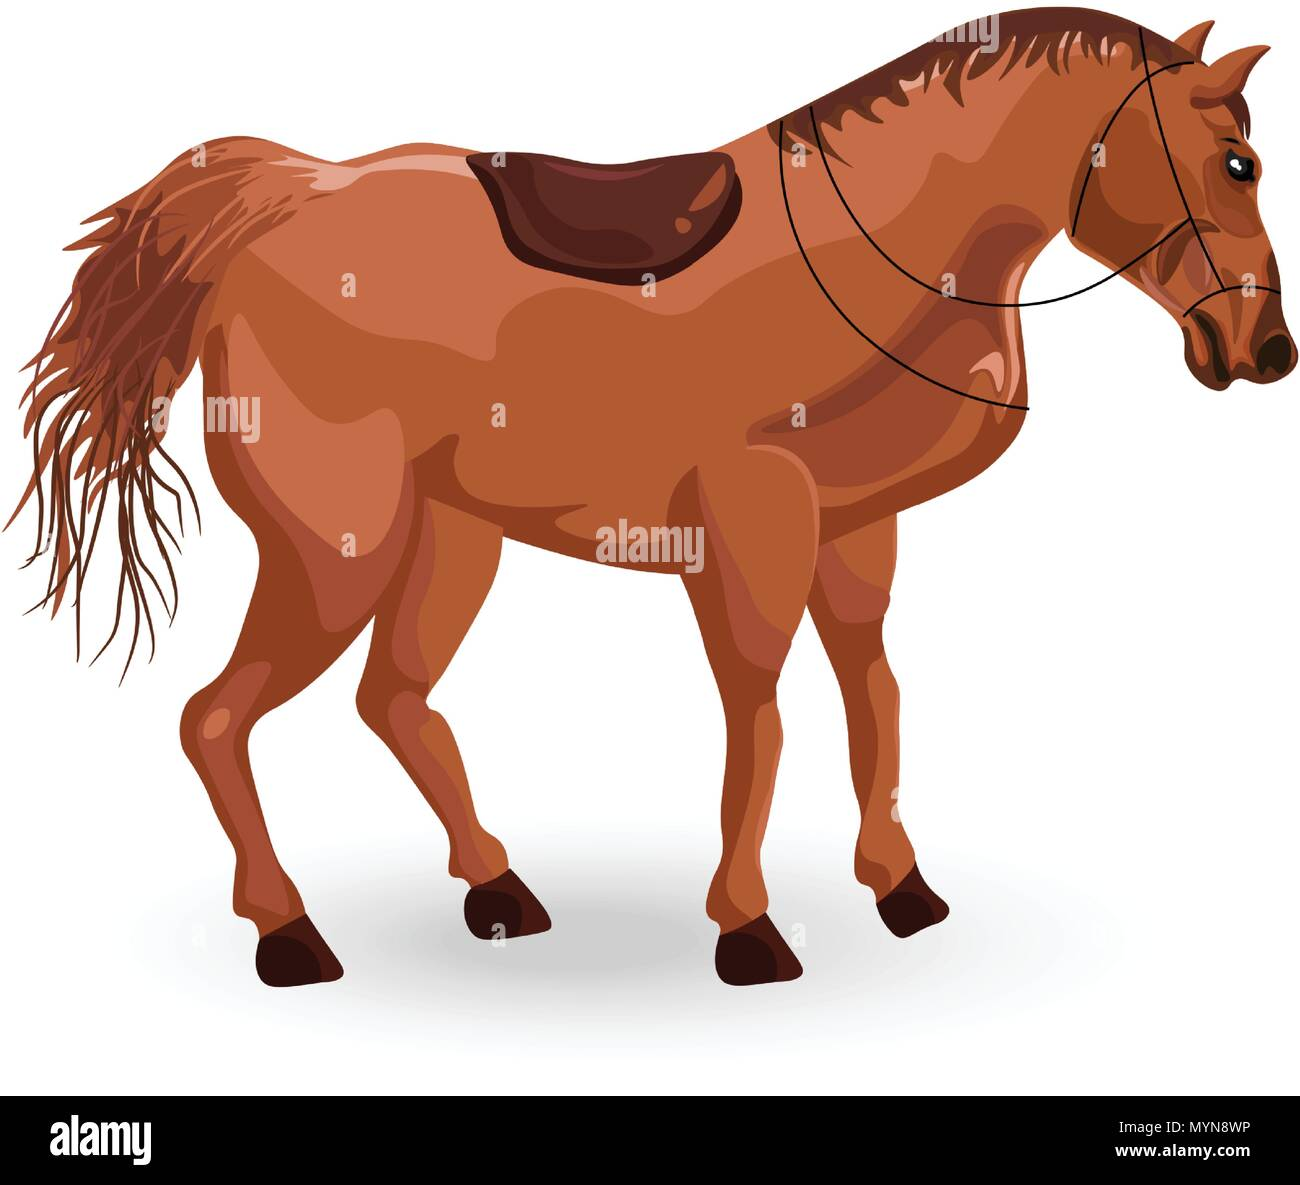 Horse isolated Vector. Elegant Detailed animal illustration - Stock Vector